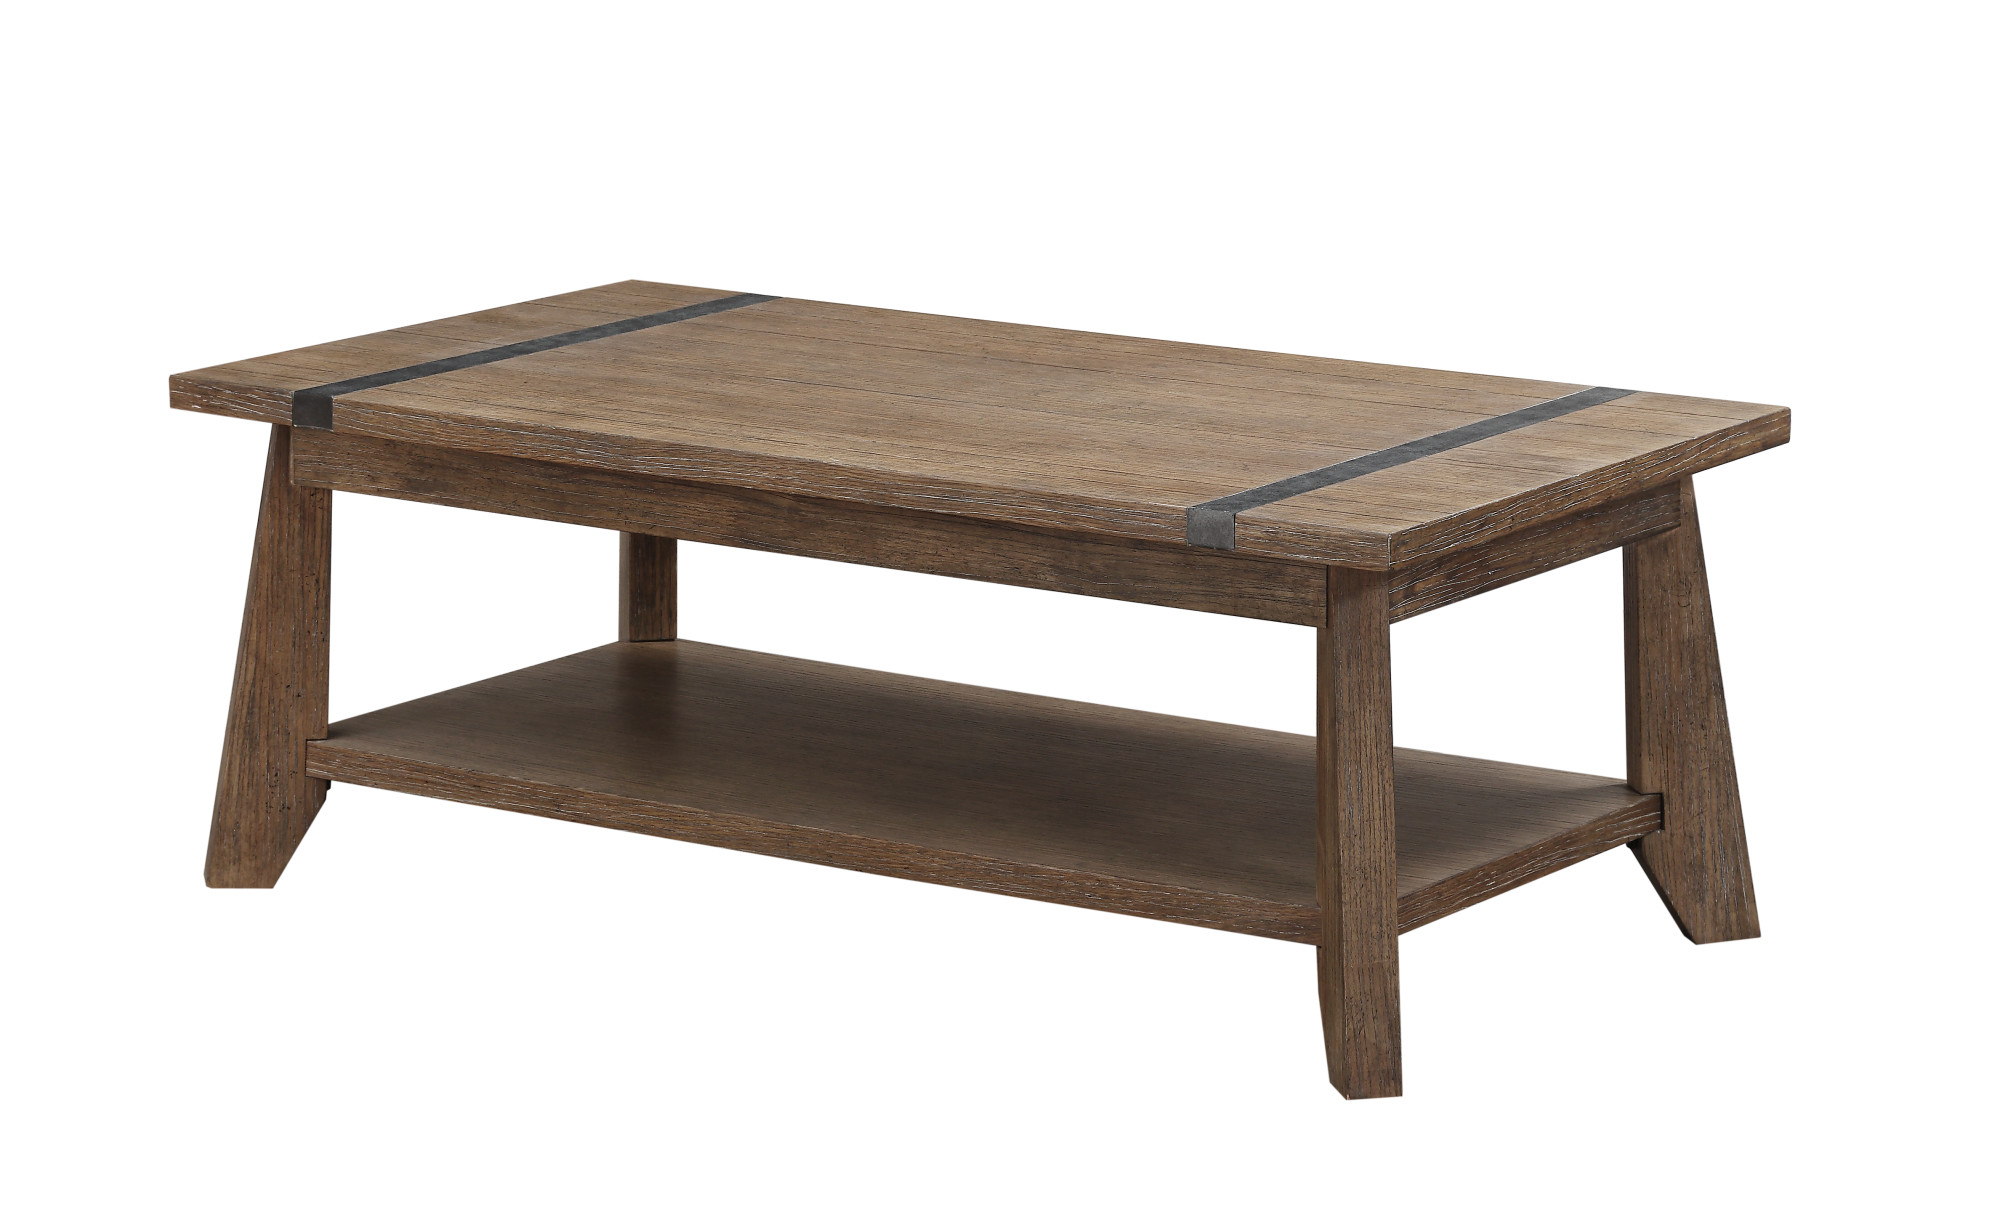 Emerald Home Viewpoint Rectangular Cocktail Table Driftwood T977-0 by Emerald Home Furnishings, LLC